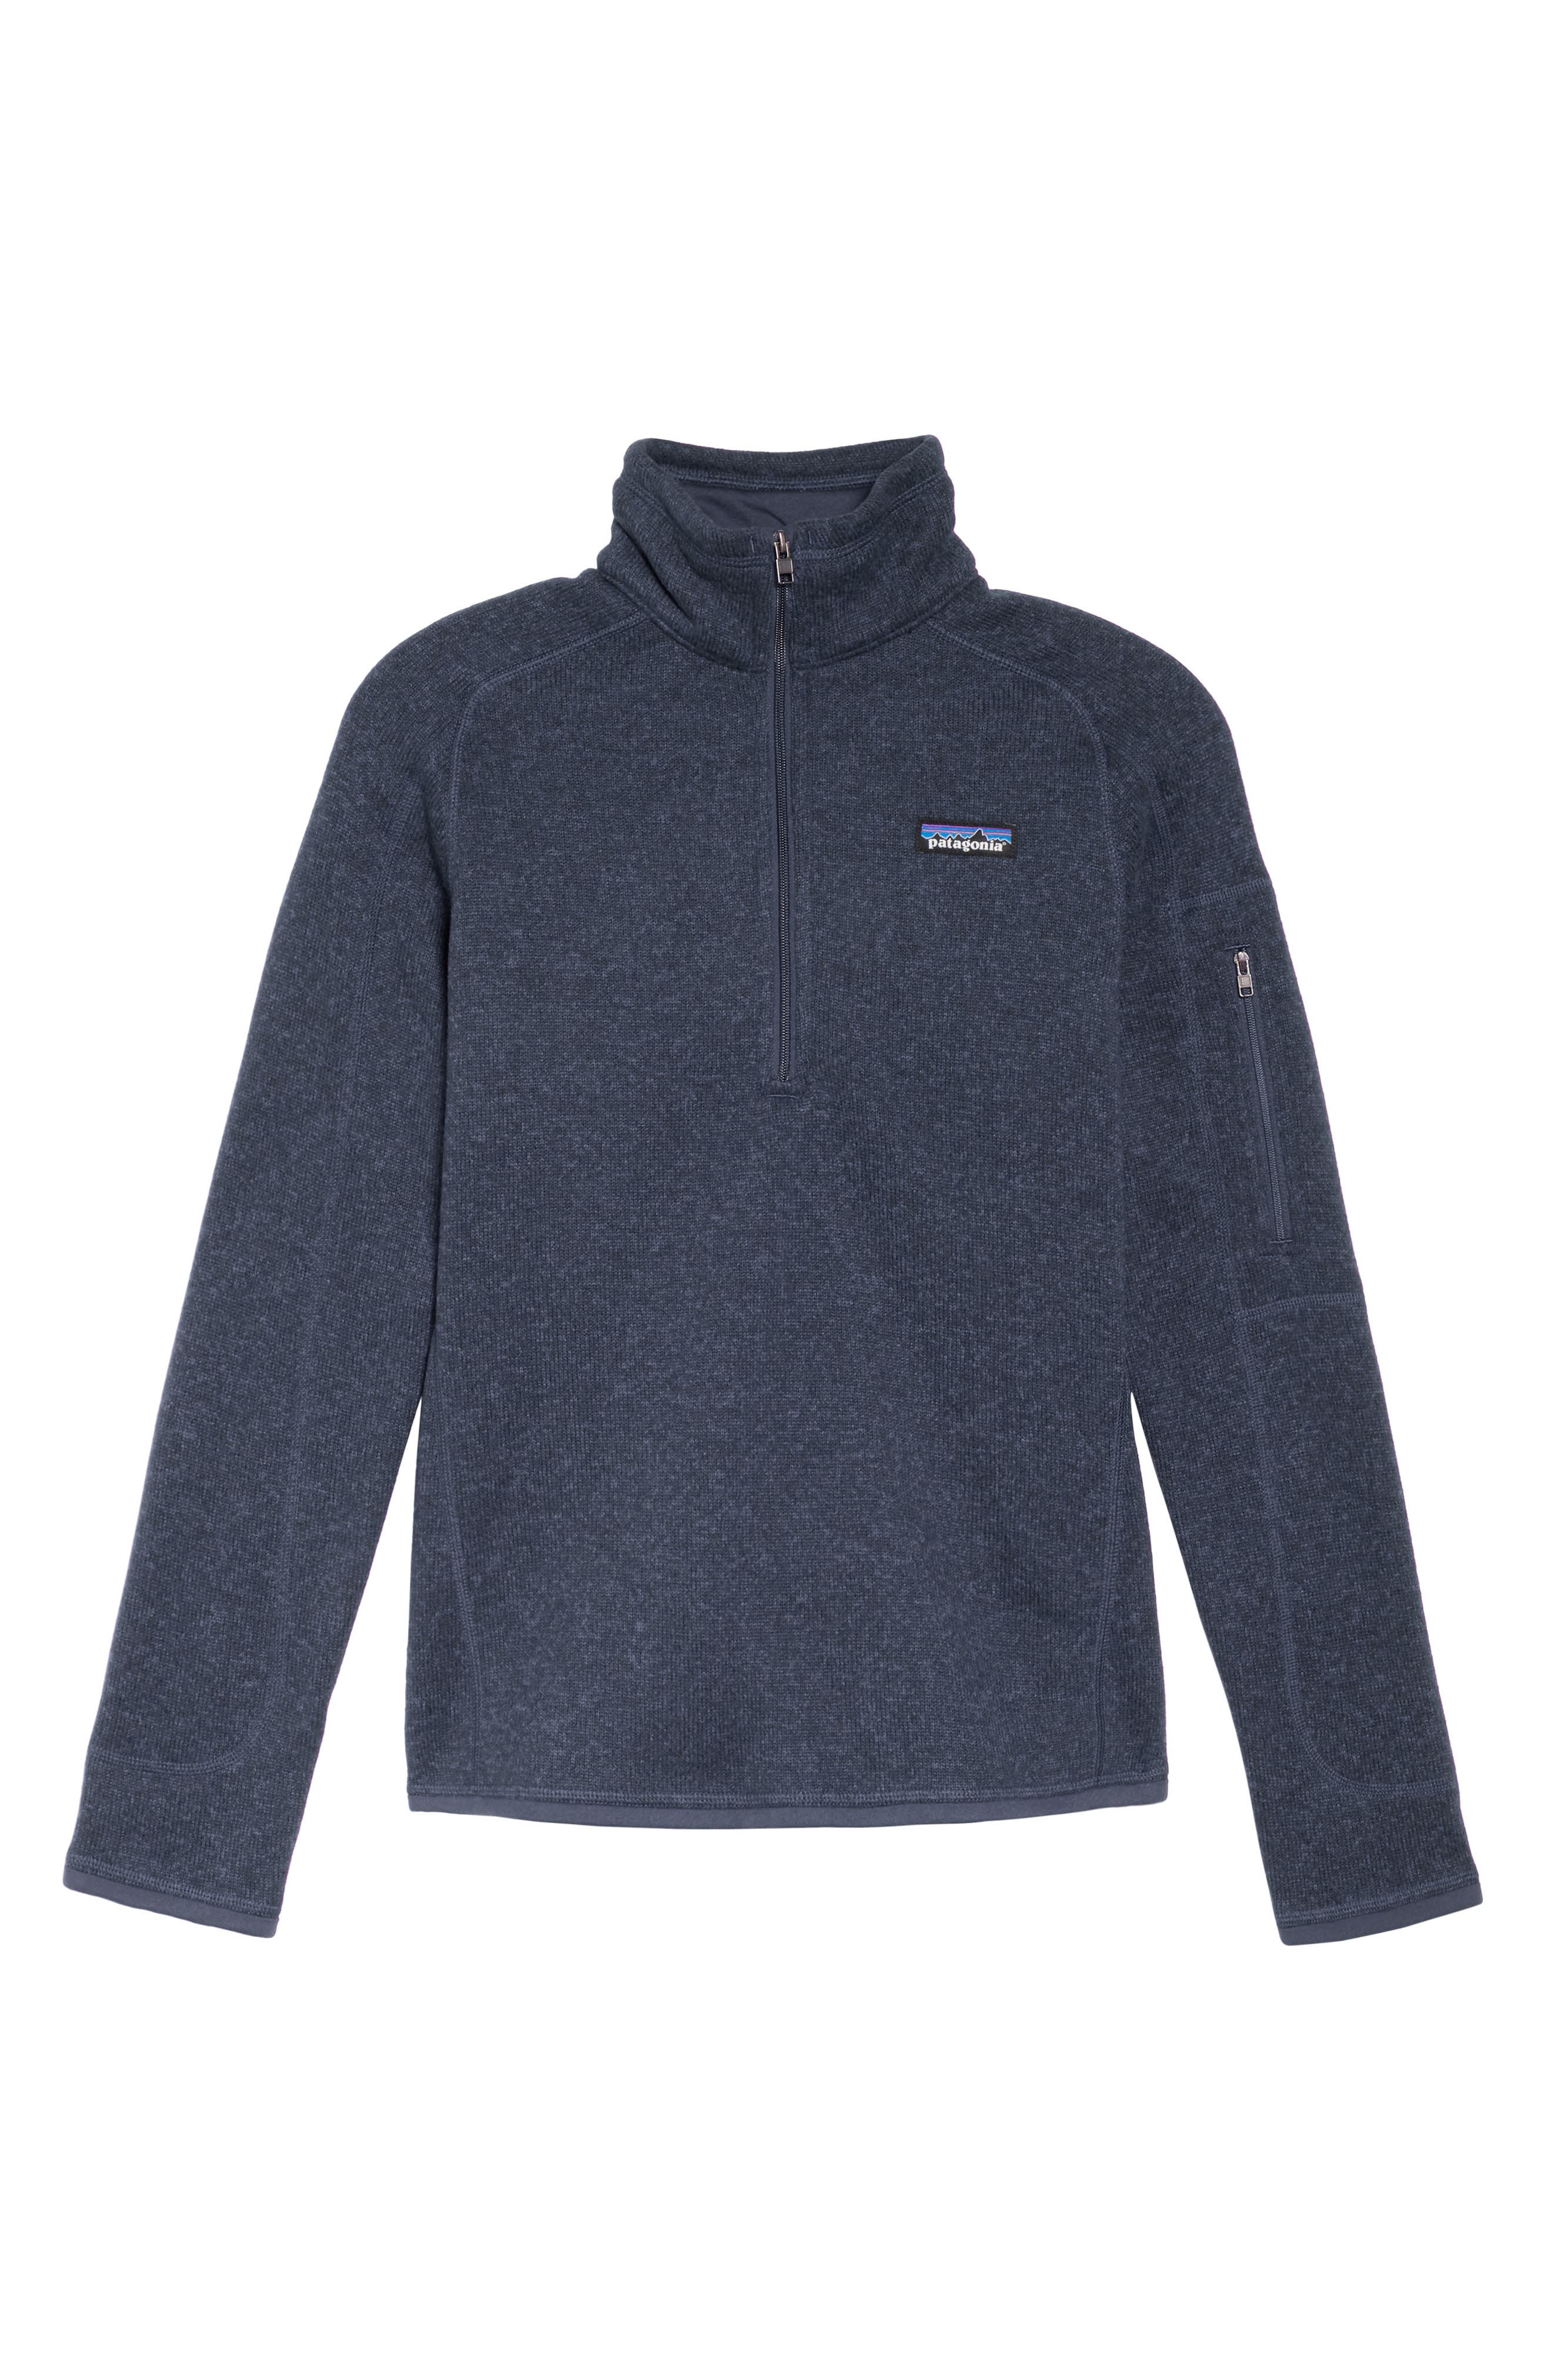 PATAGONIA, Better Sweater Zip Pullover, Alternate thumbnail 2, color, CLASSIC NAVY